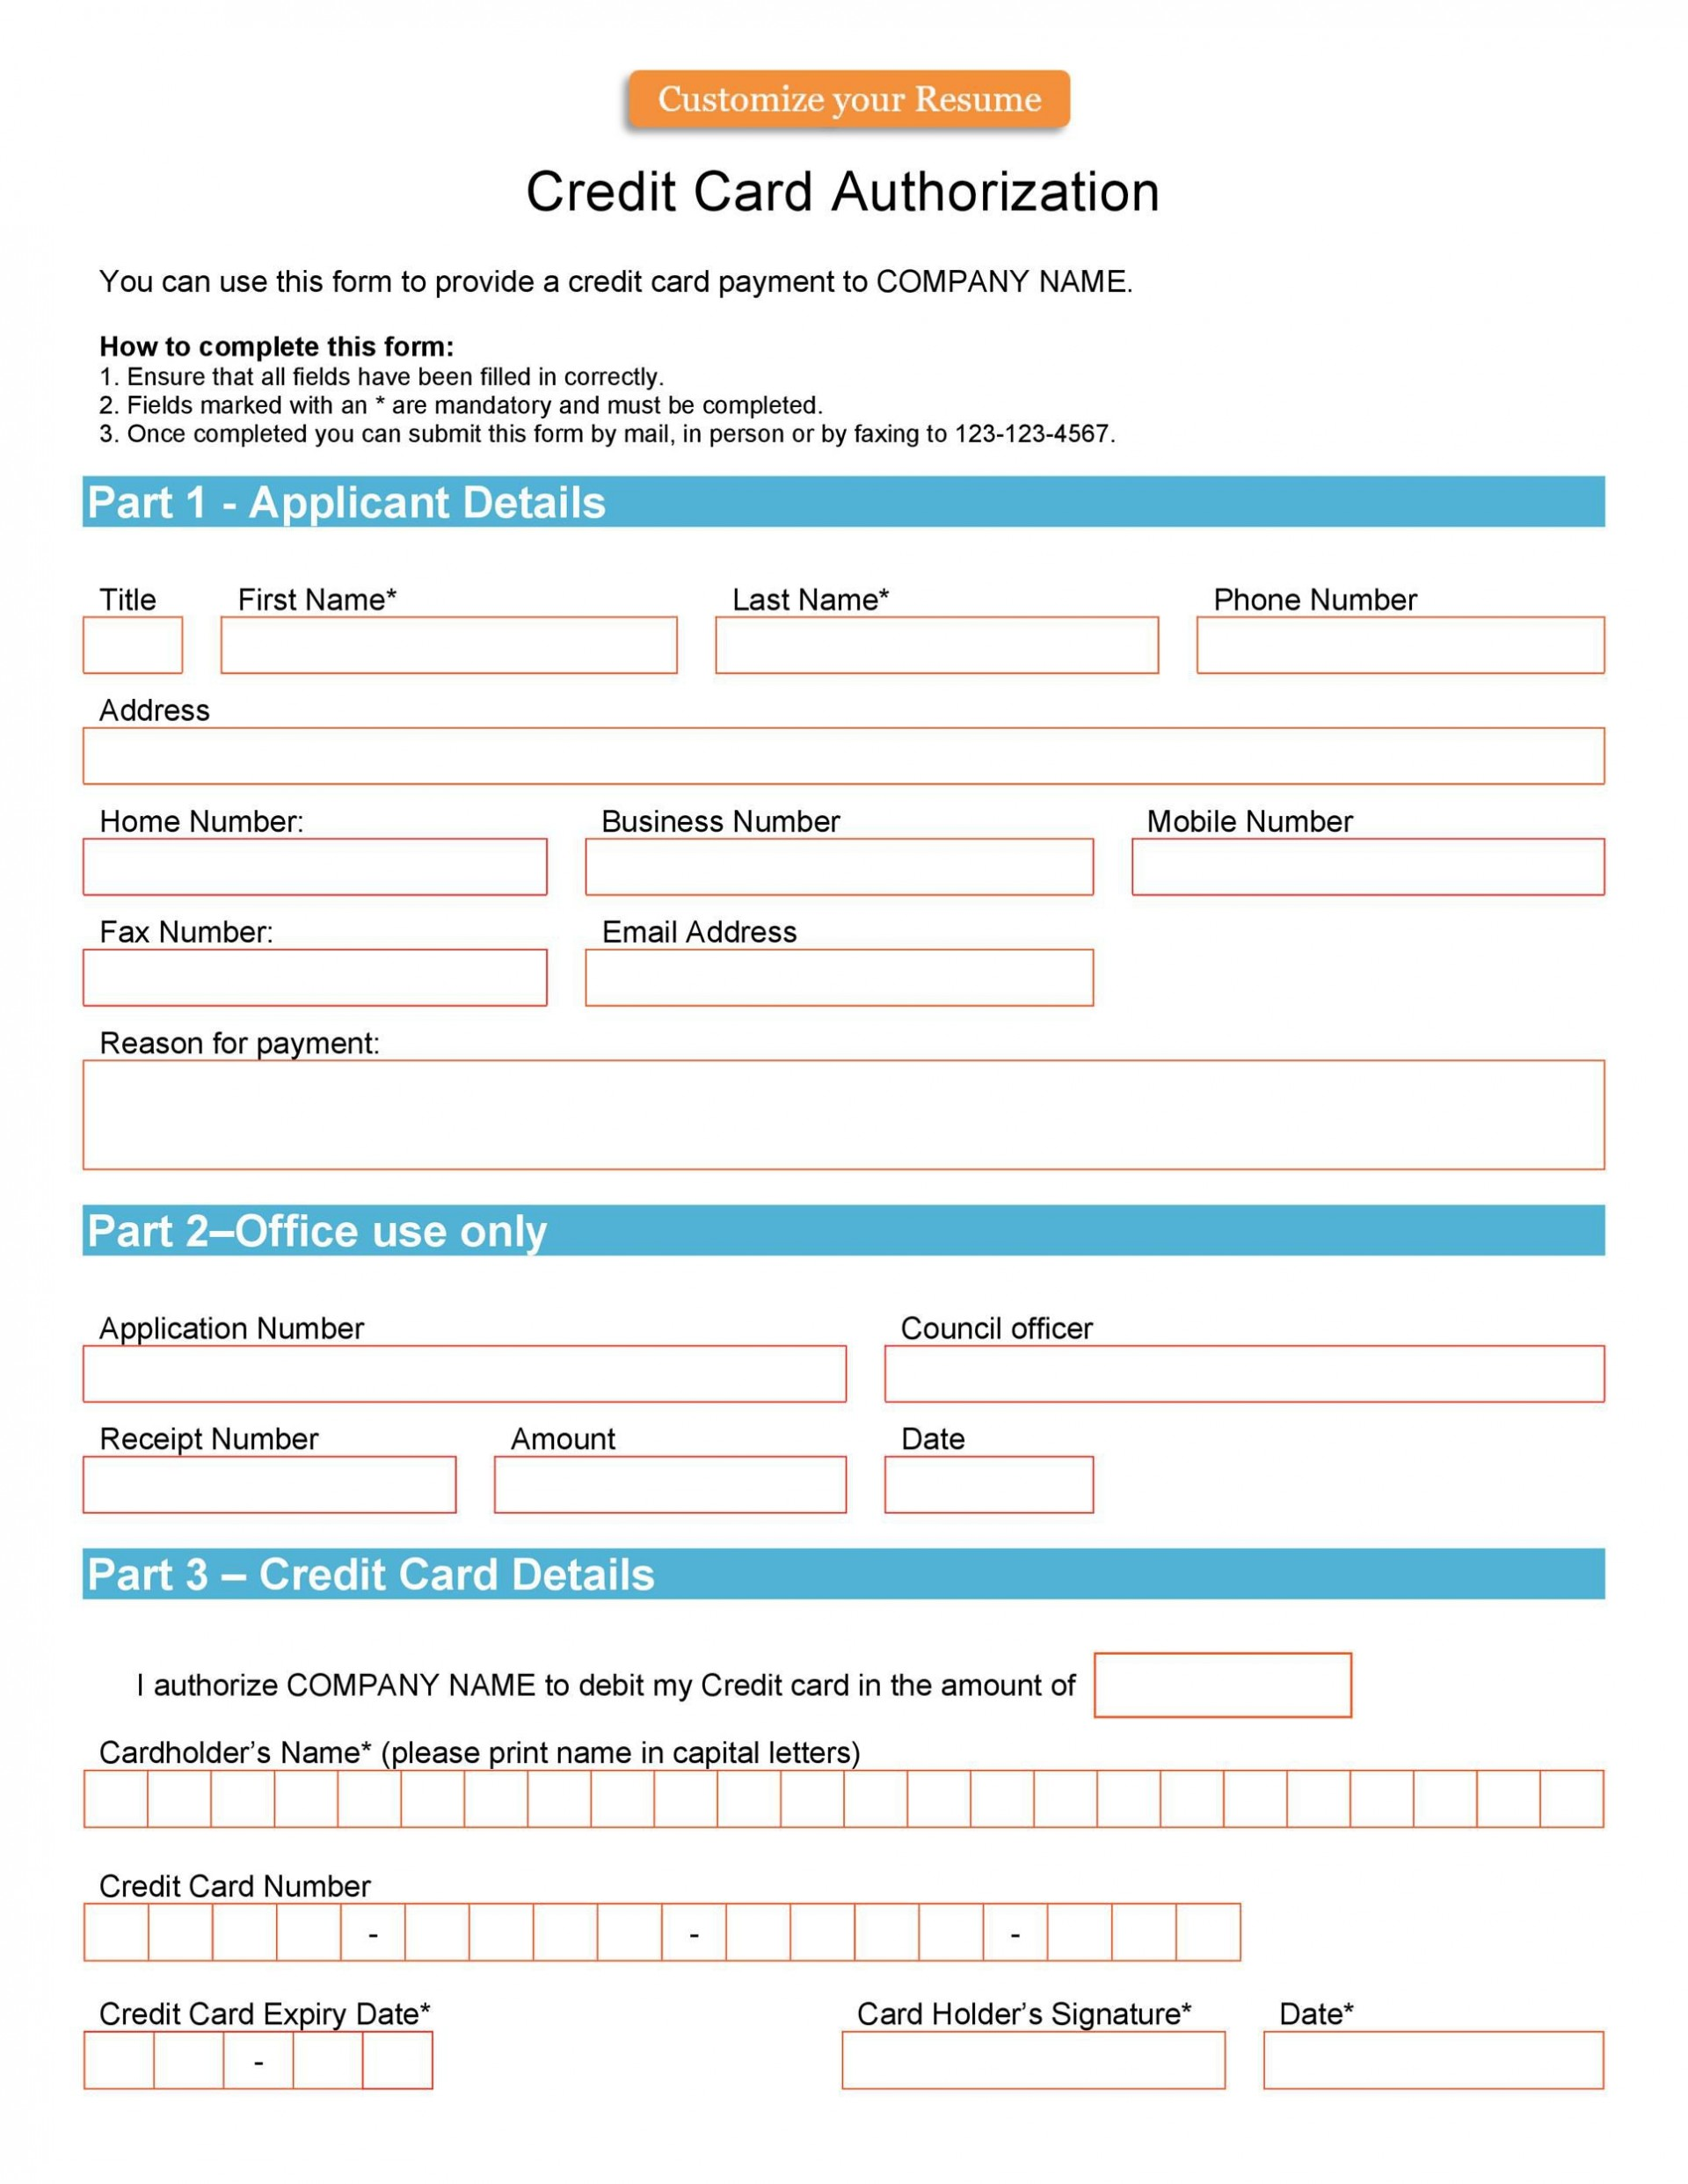 004 Unusual Credit Card Usage Request Form Template Example 1920